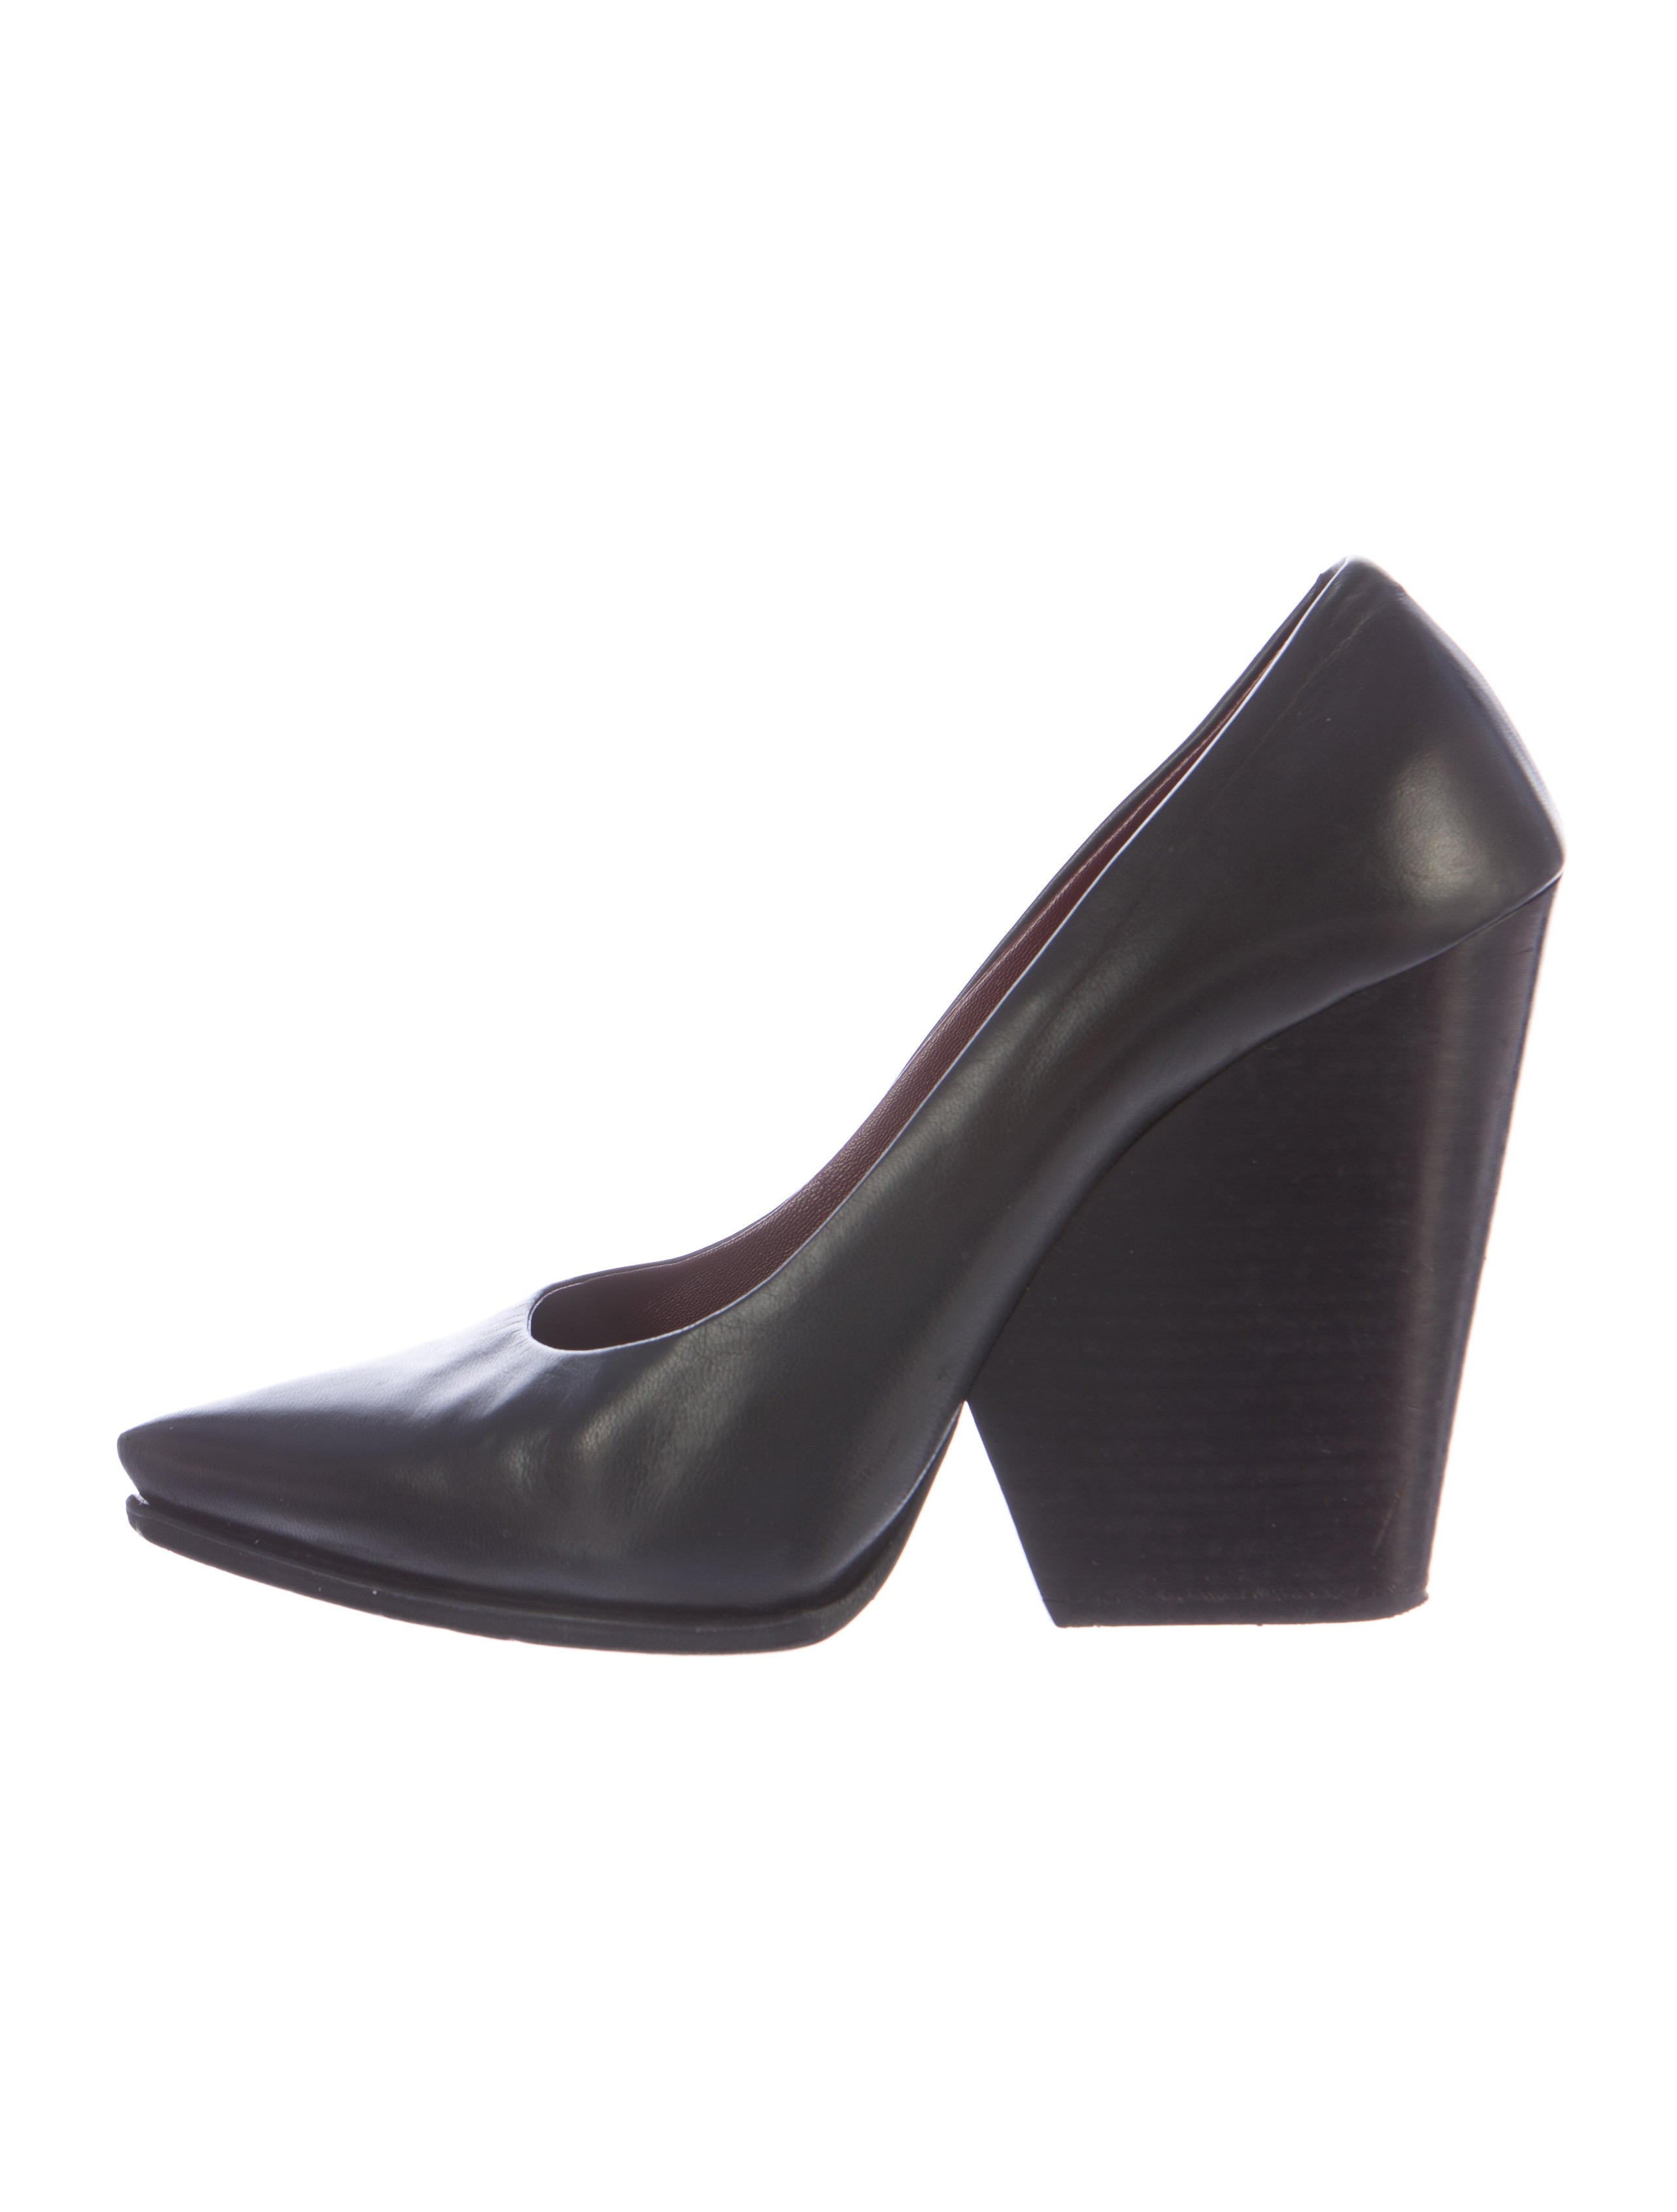 c 233 line pointed toe leather wedges shoes cel36534 the